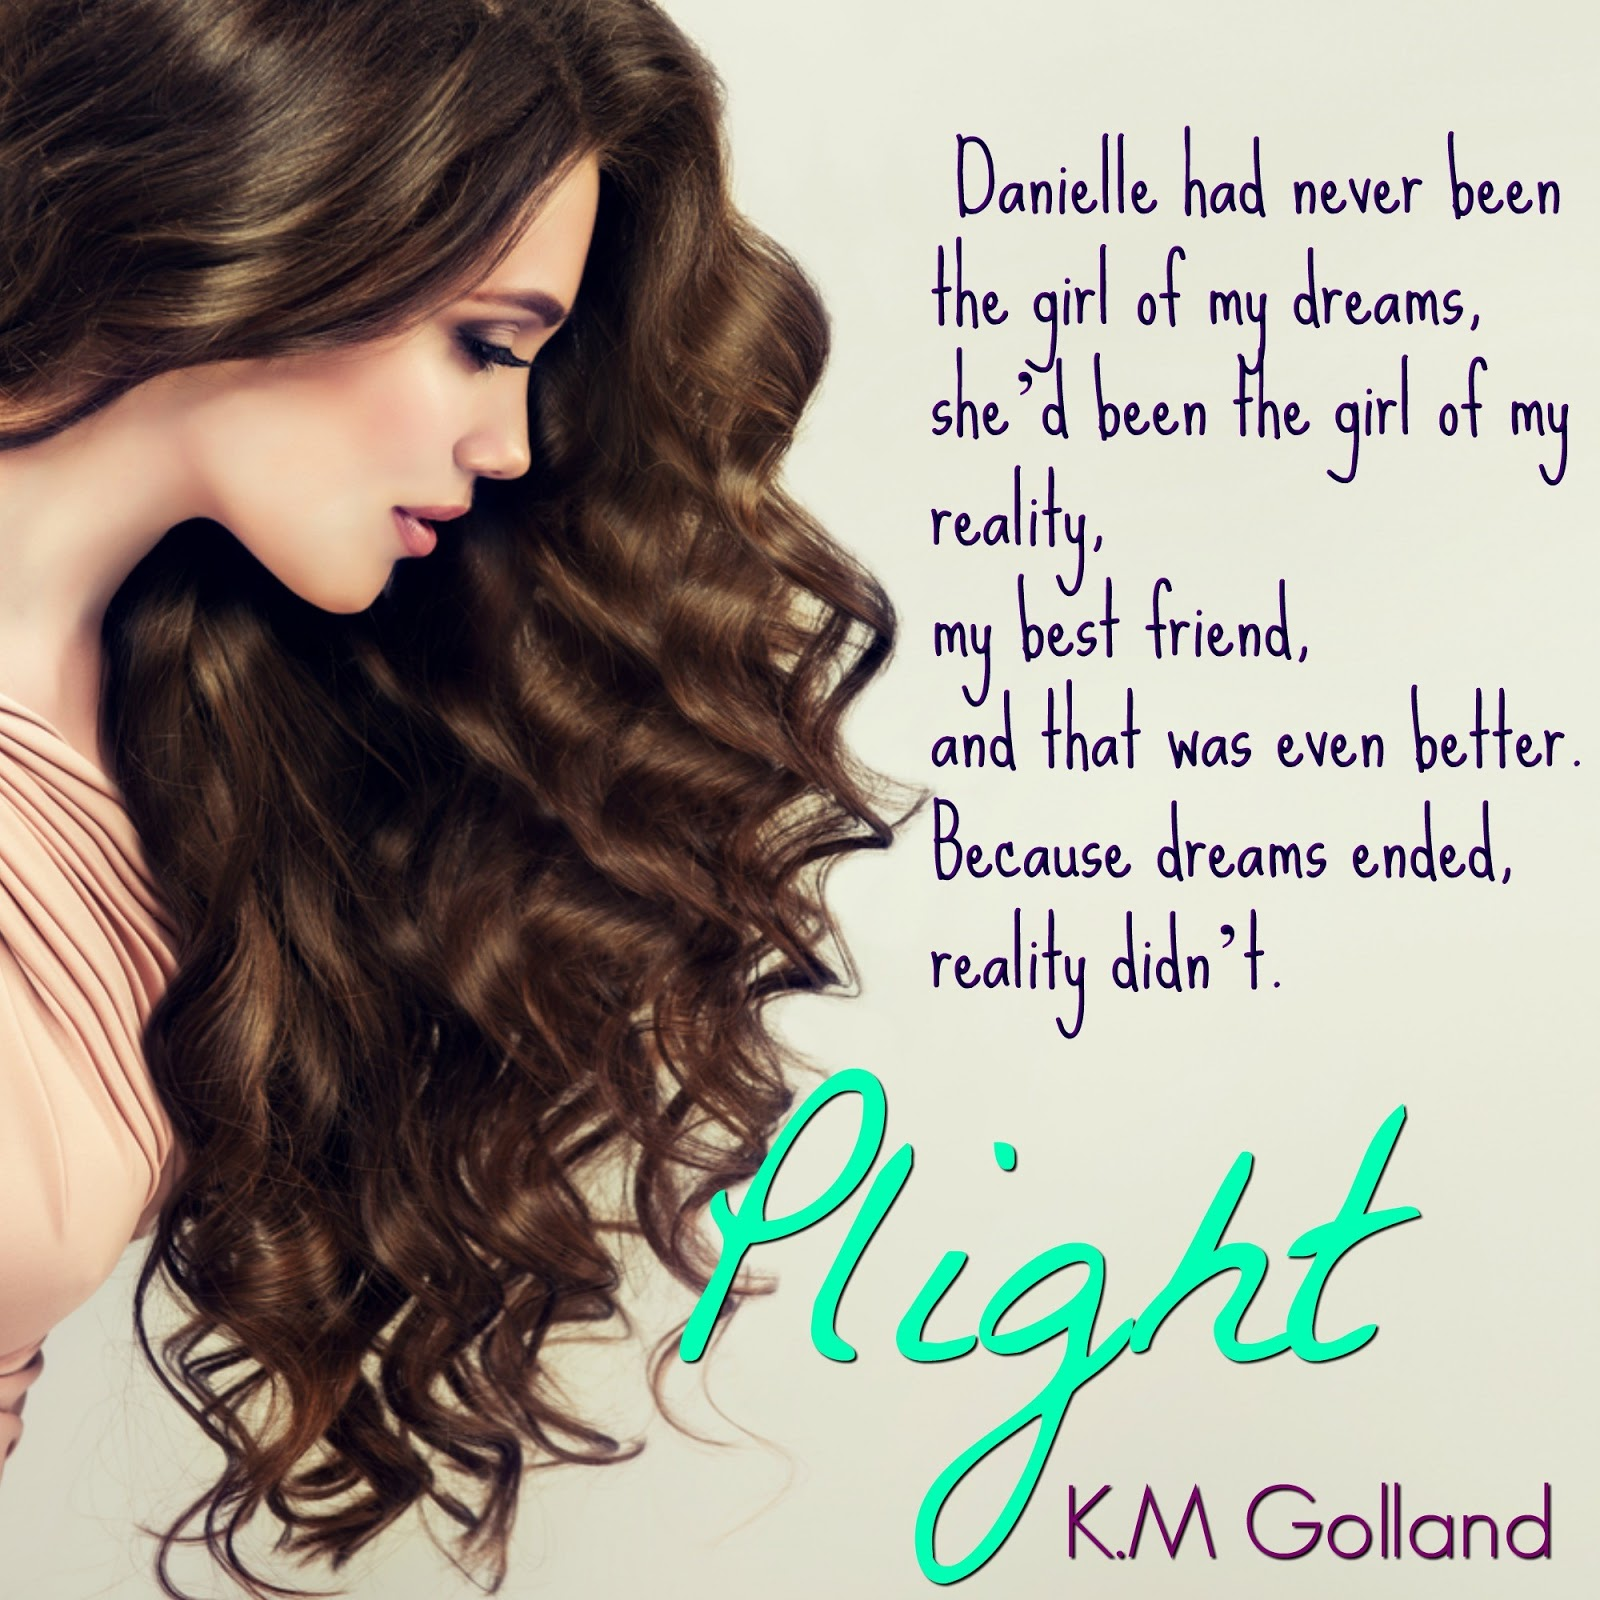 Release Blitz For Plight By K.M. Golland